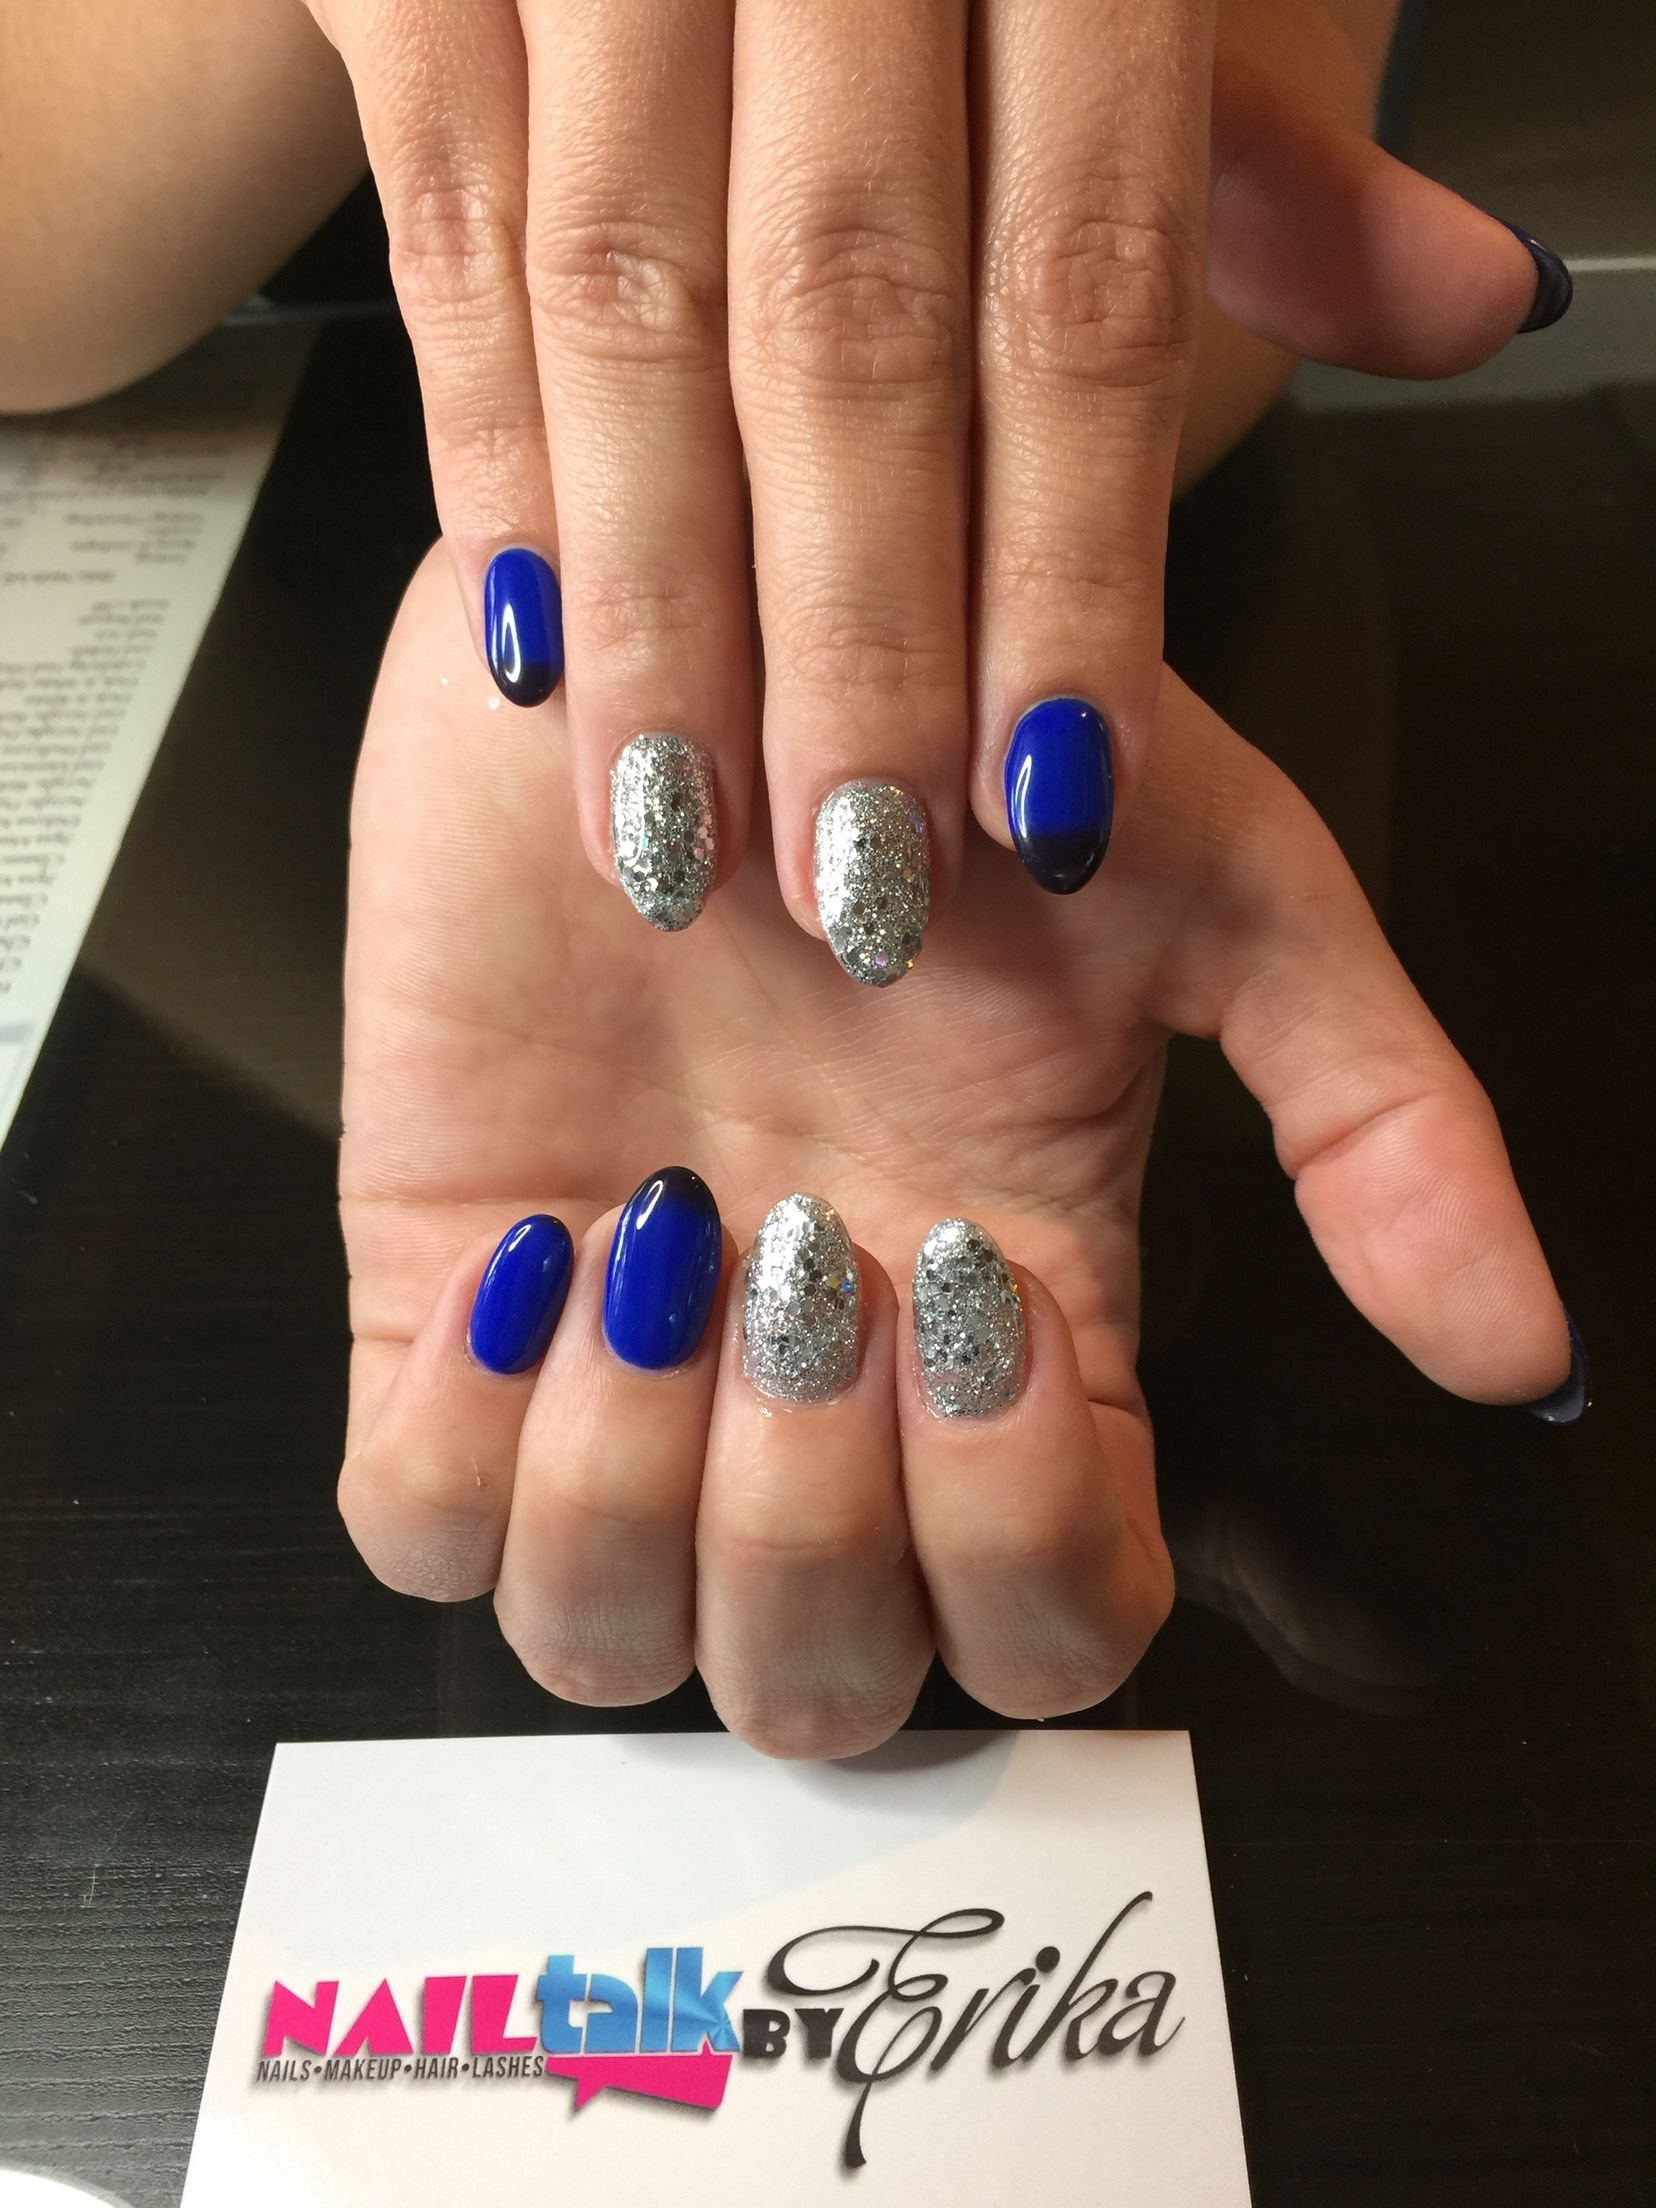 Gel almond shaped nails by Erika in Hollywood FL by appointment only ...